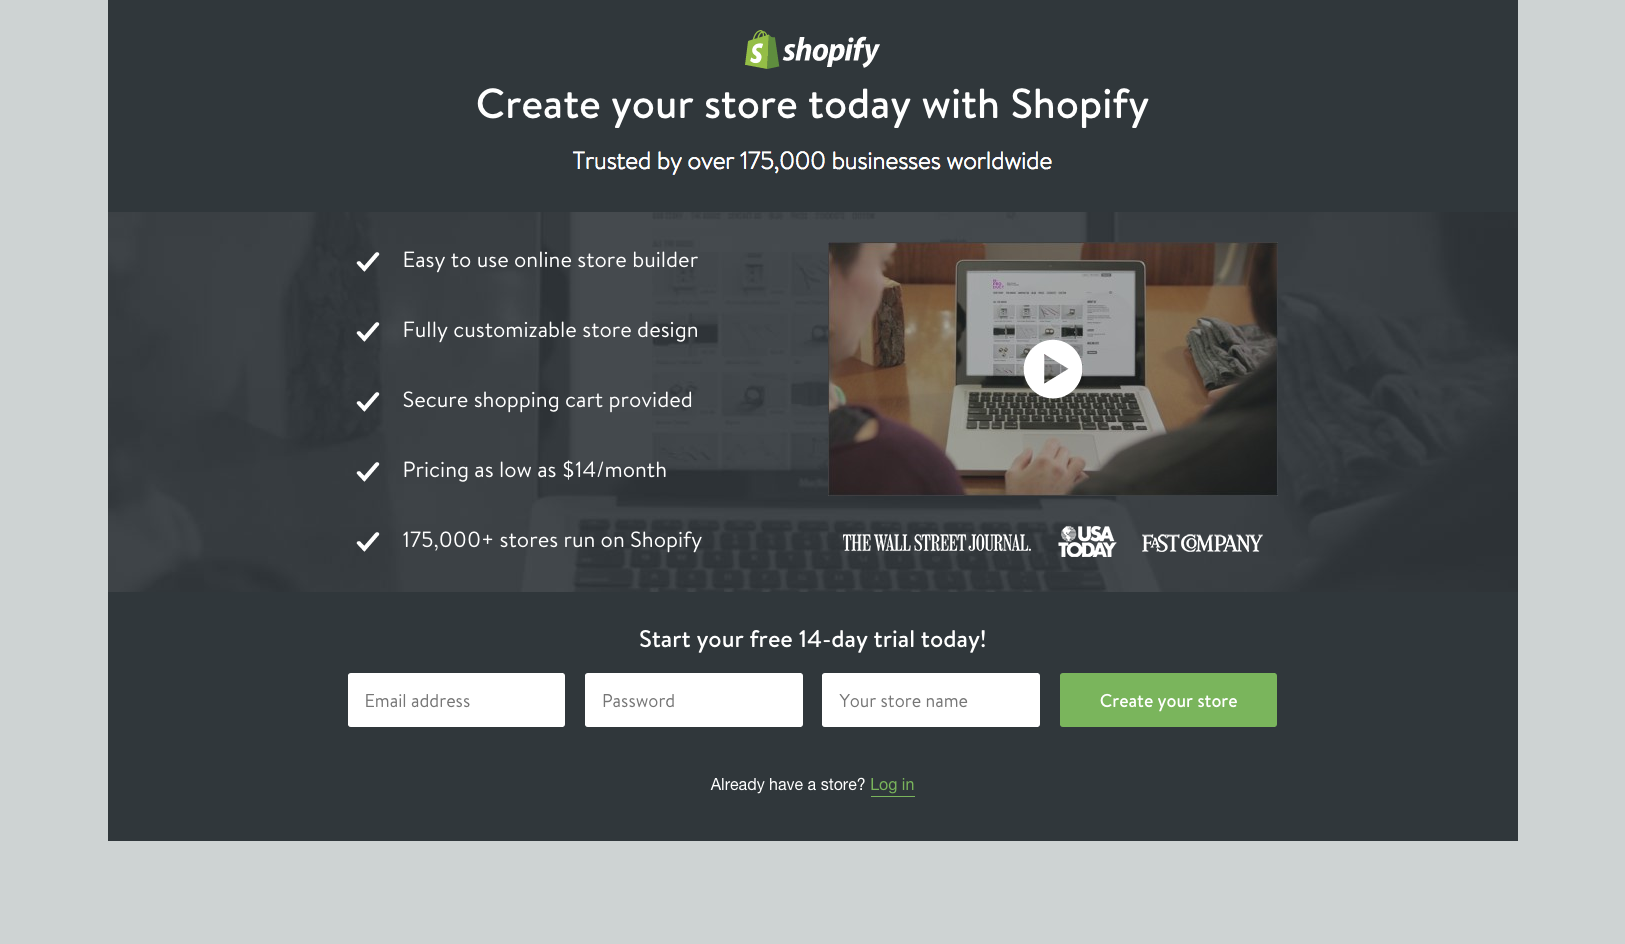 Website Teardown How To Build The Shopify Free Trial Landing - Shopify landing page template